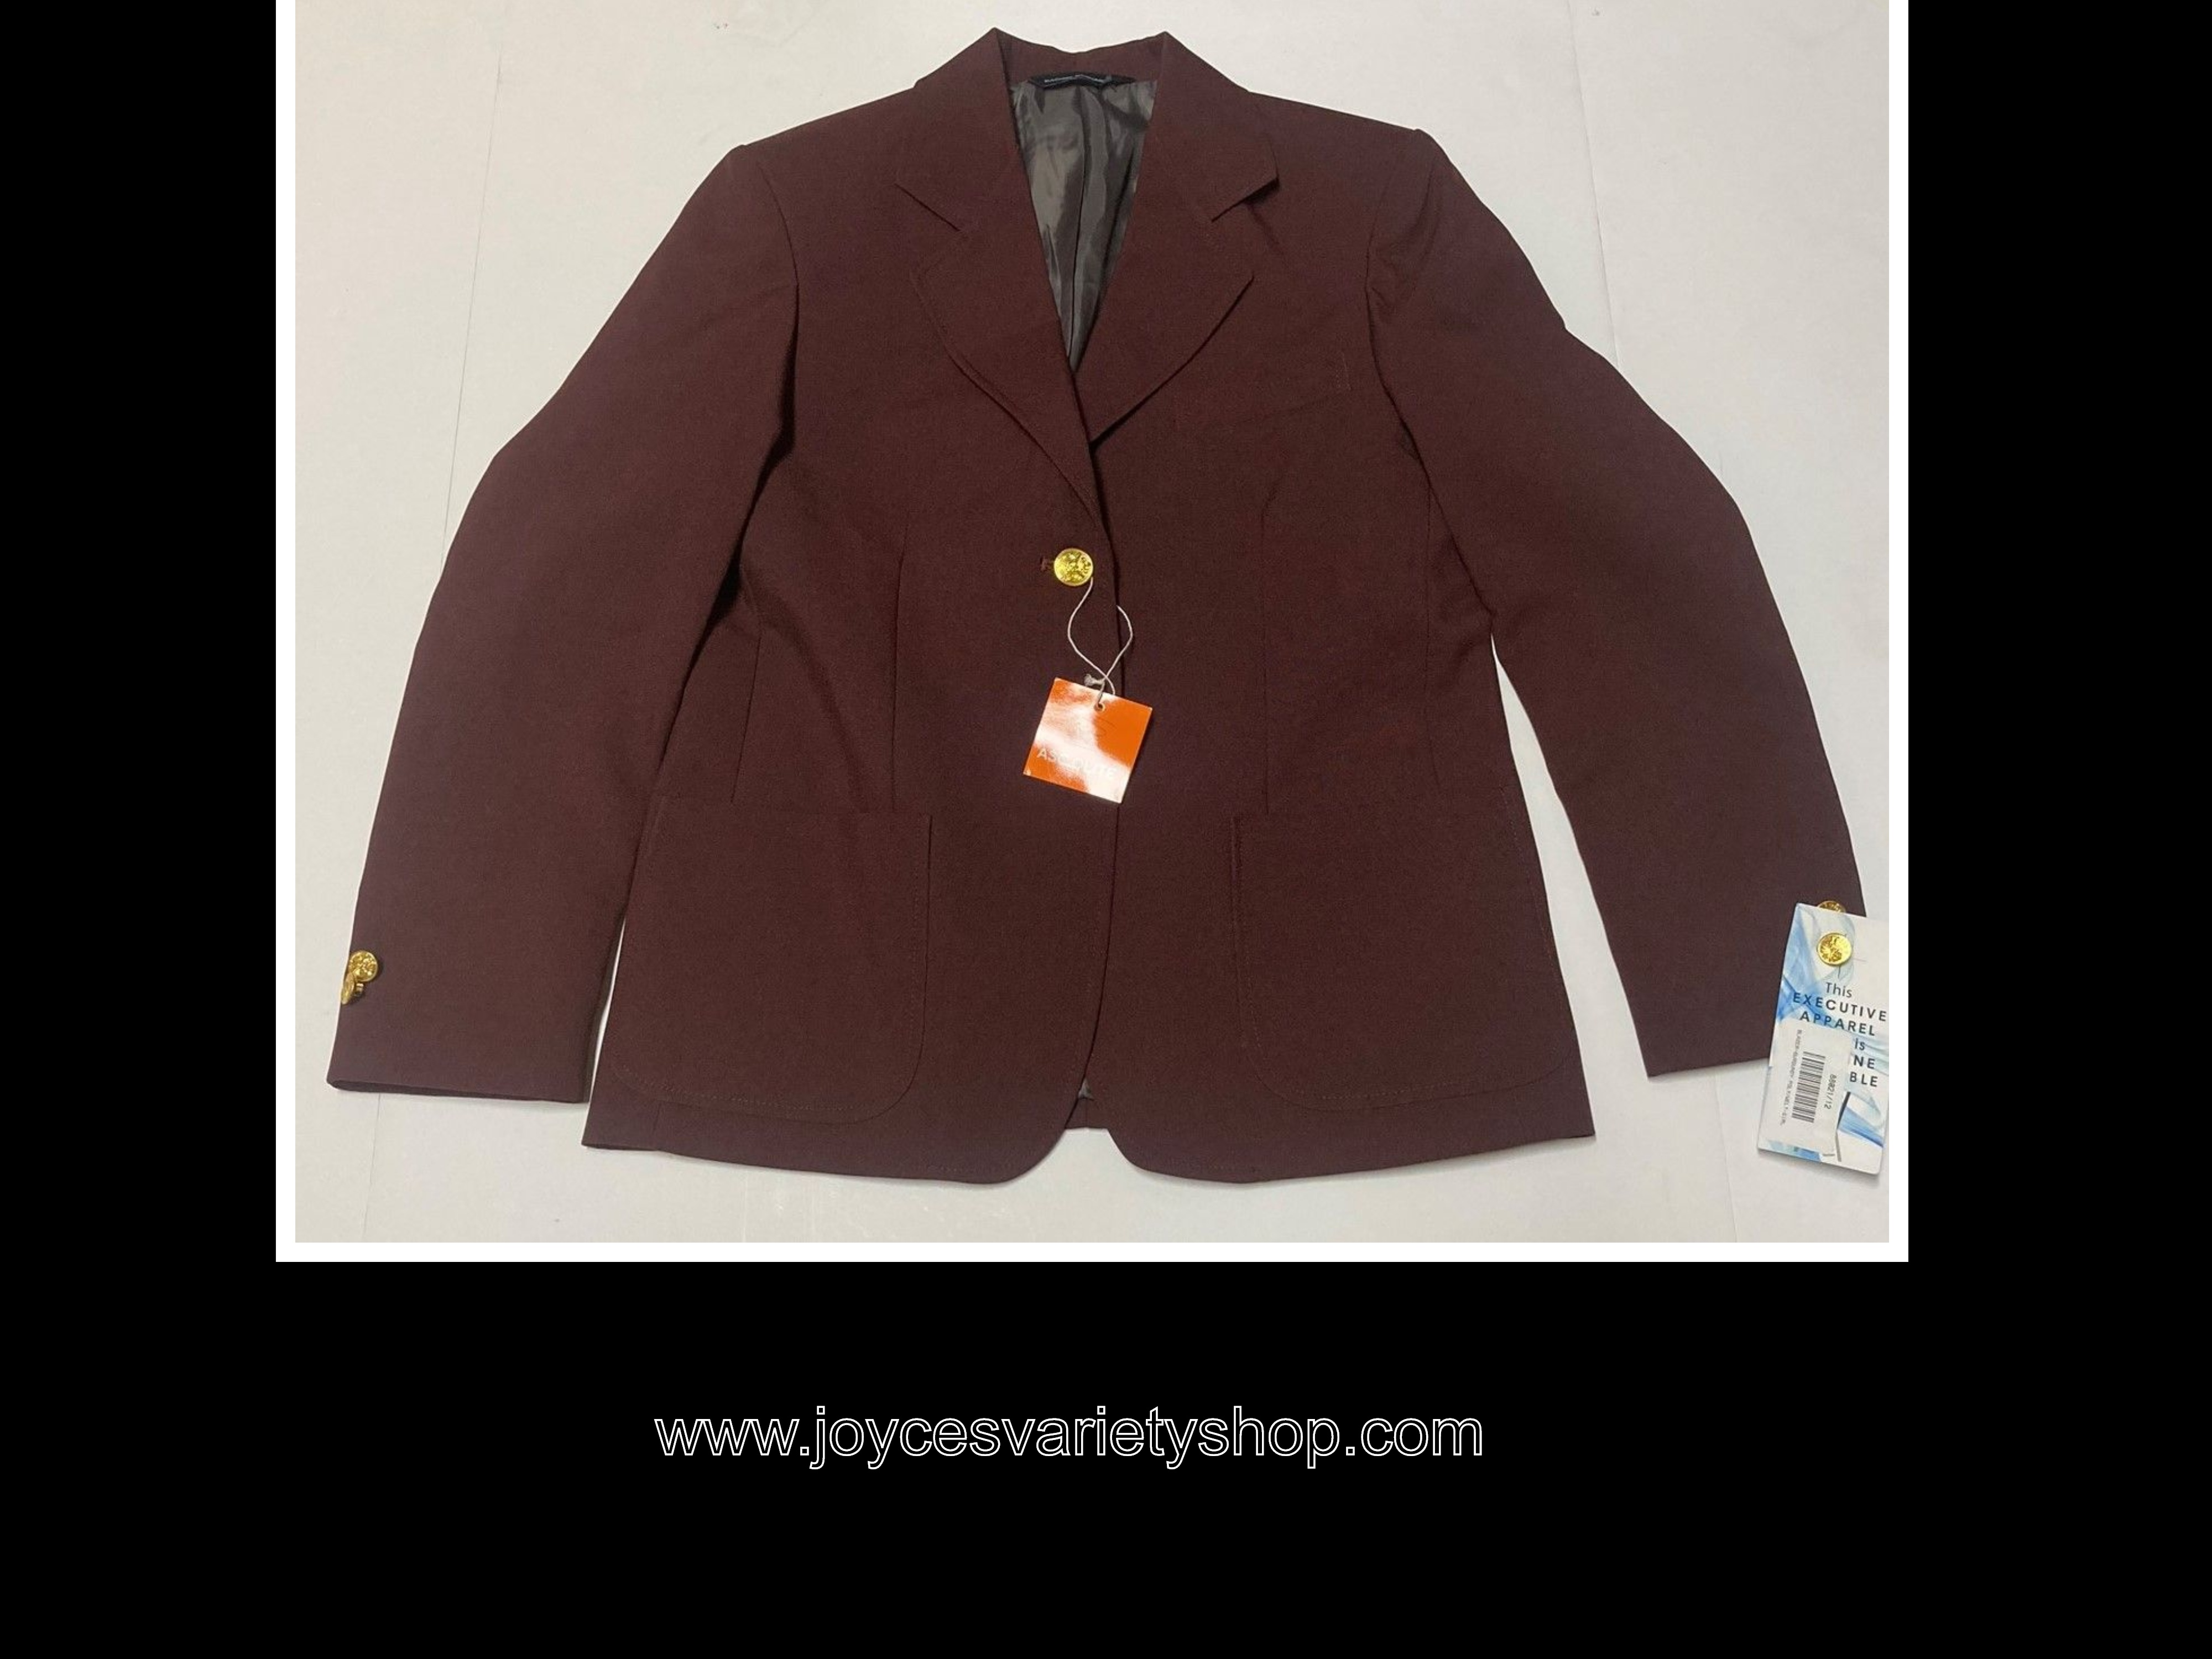 Executive Apparel Career Jacket Womens Sz 12R Burgundy Blazer Machine Washable